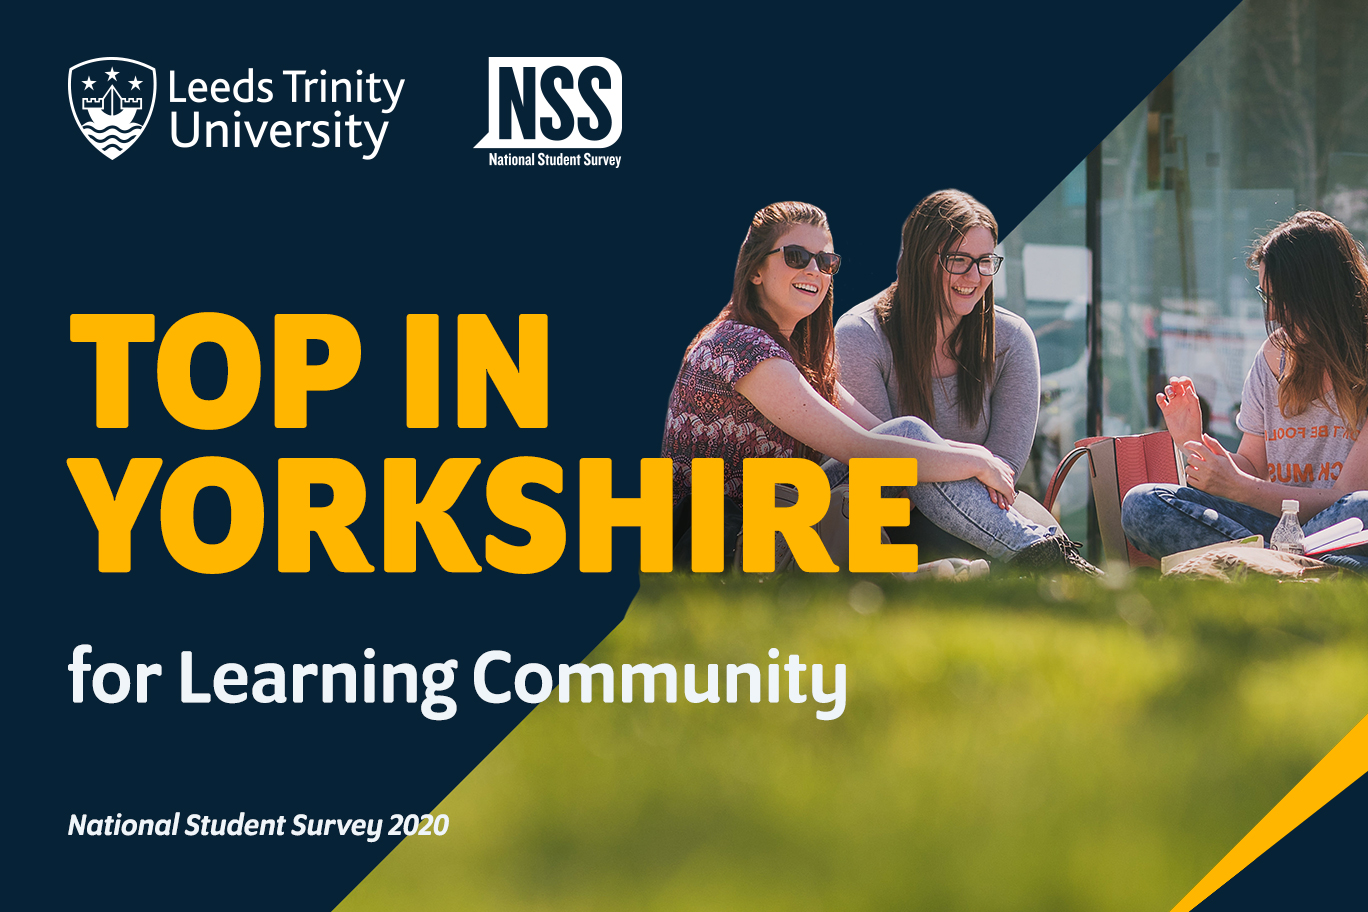 NSS 2020 Top in Yorkshire for Learning Community.